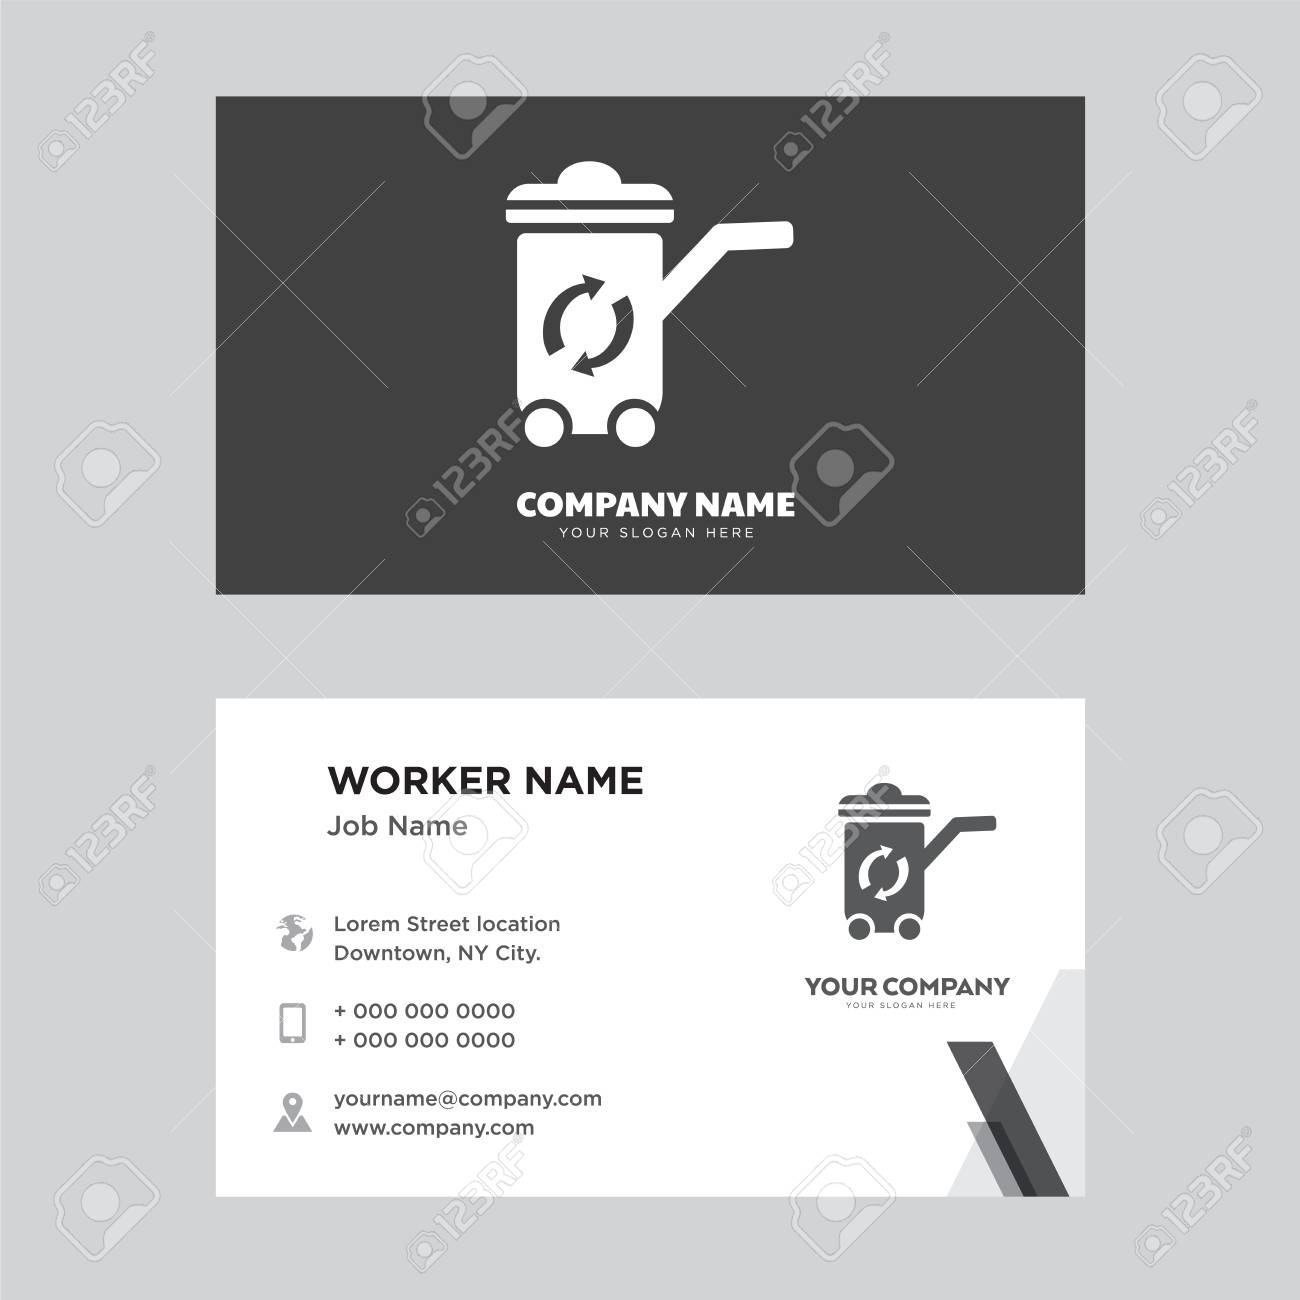 Recycle bin business card design template visiting for your recycle bin business card design template visiting for your company modern horizontal identity card colourmoves